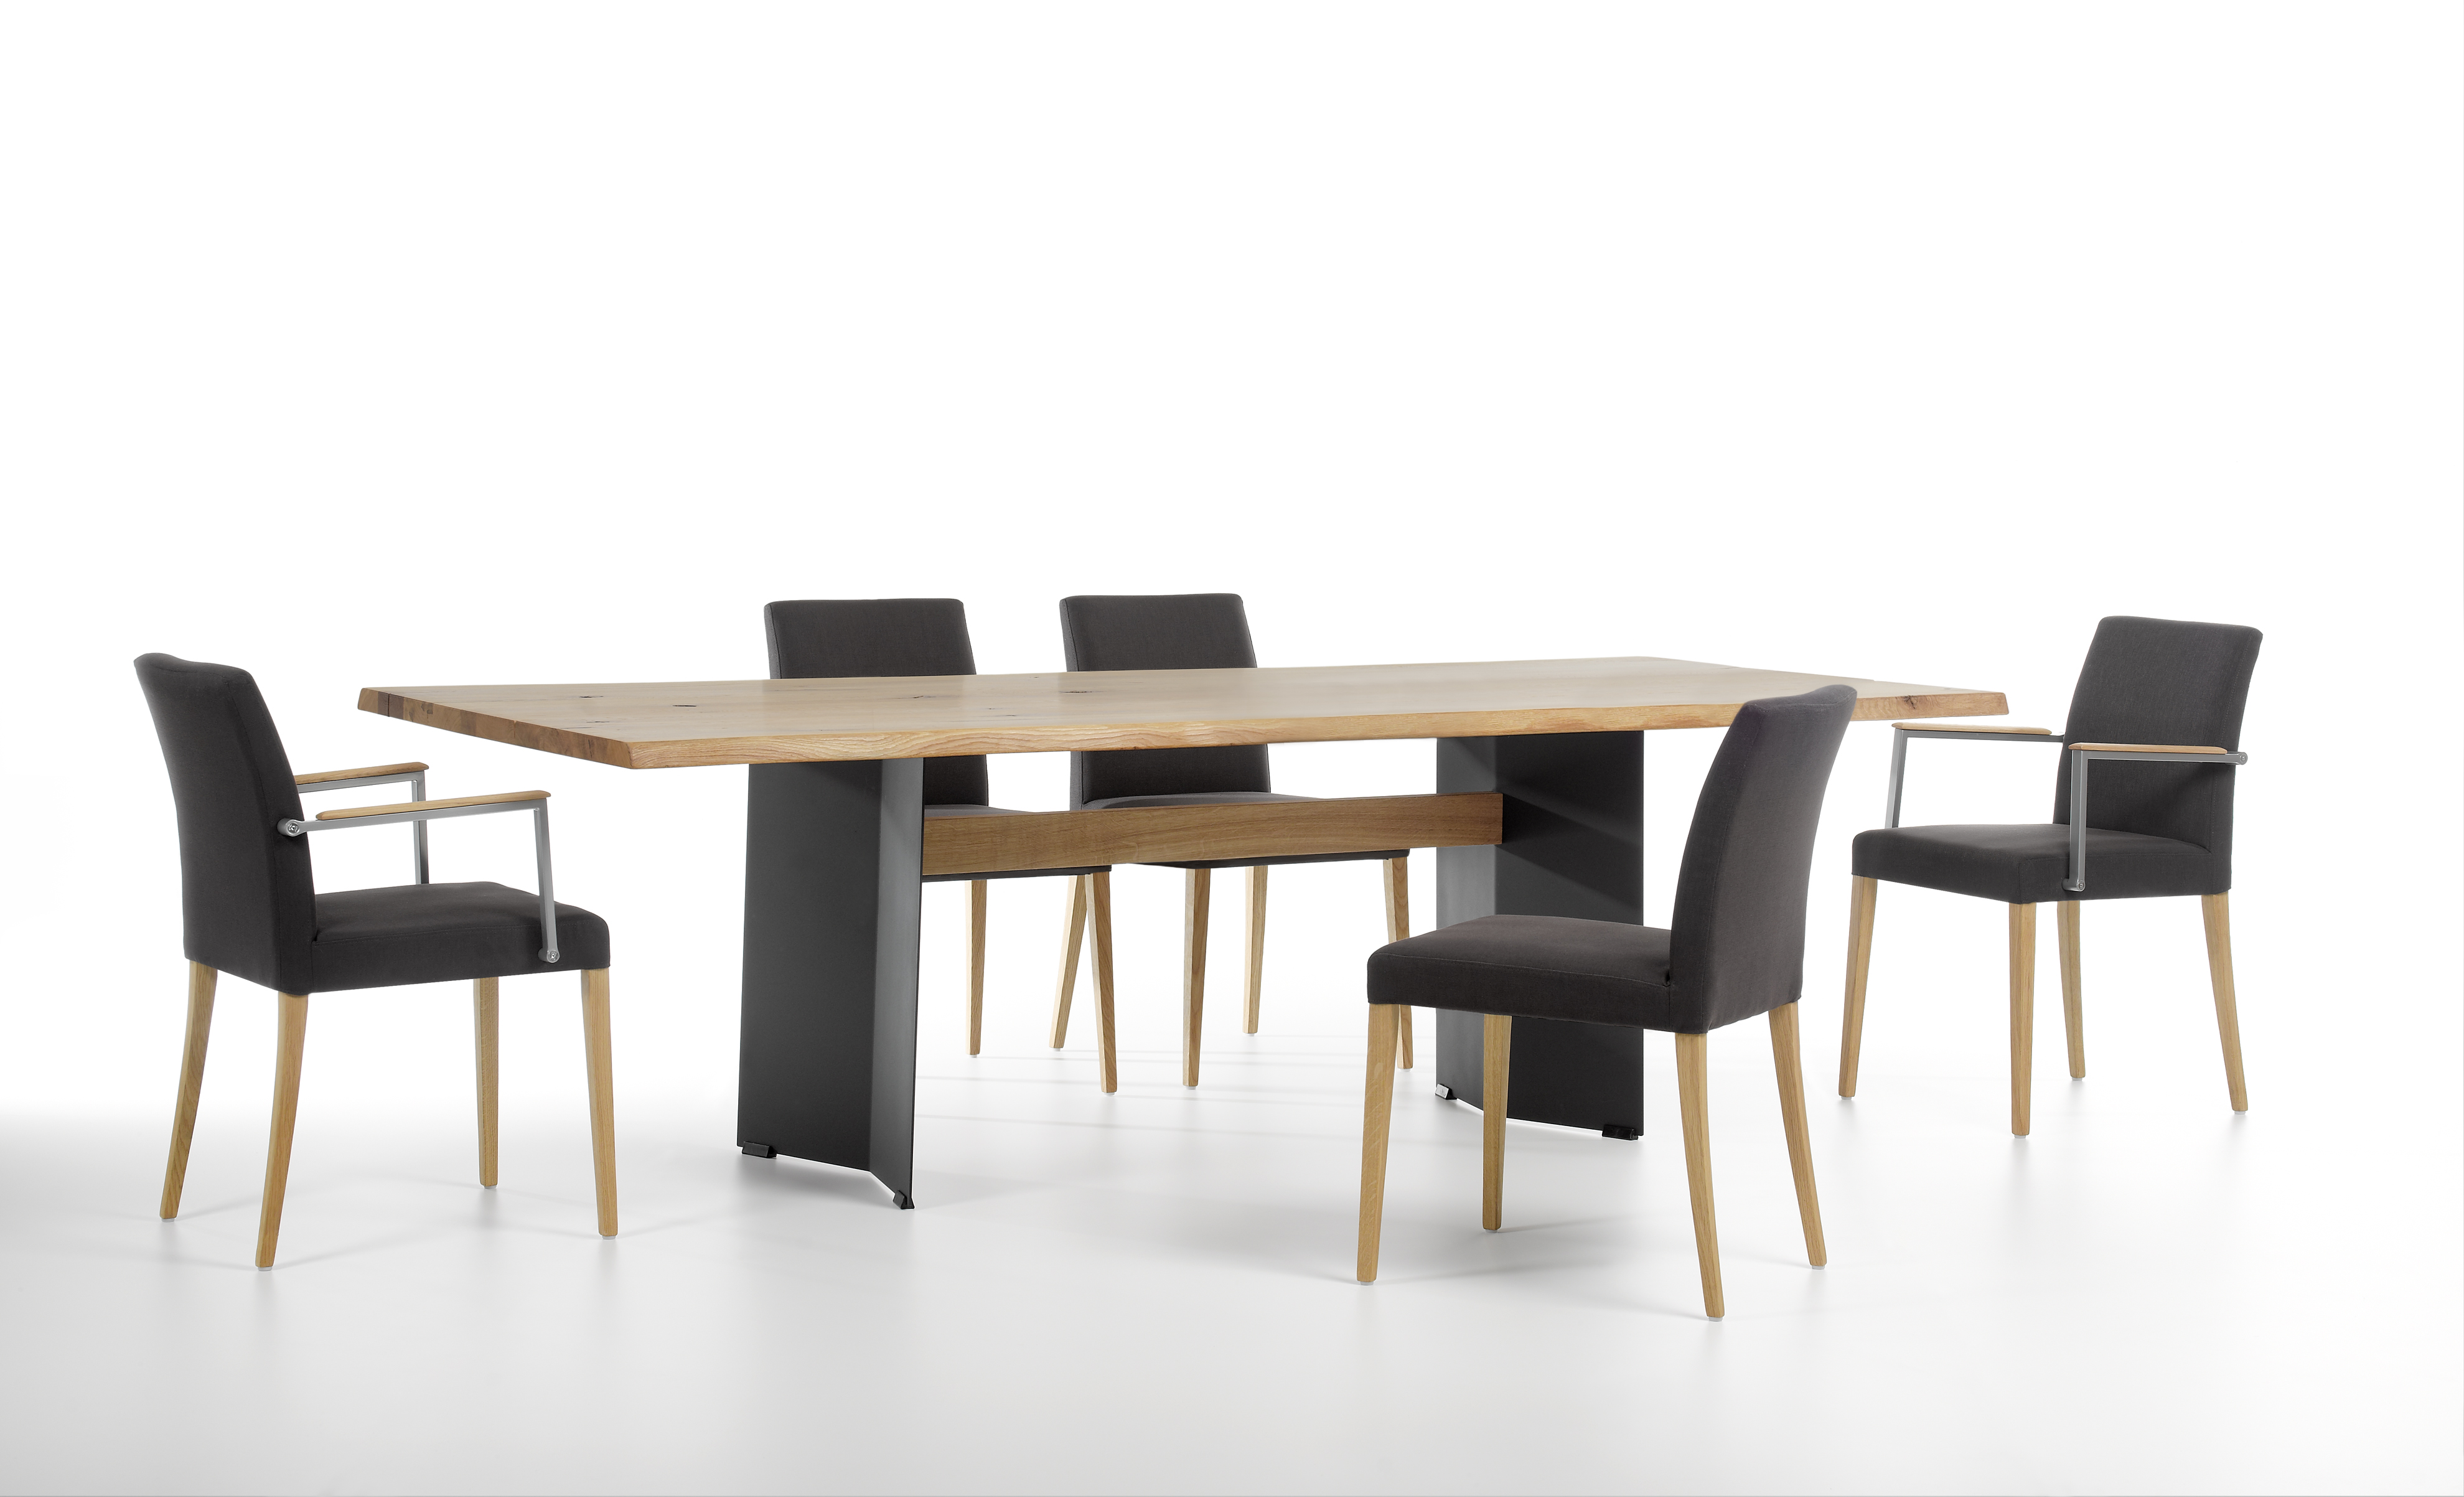 Previous Next Accueil Produits TABLE AMAZONE